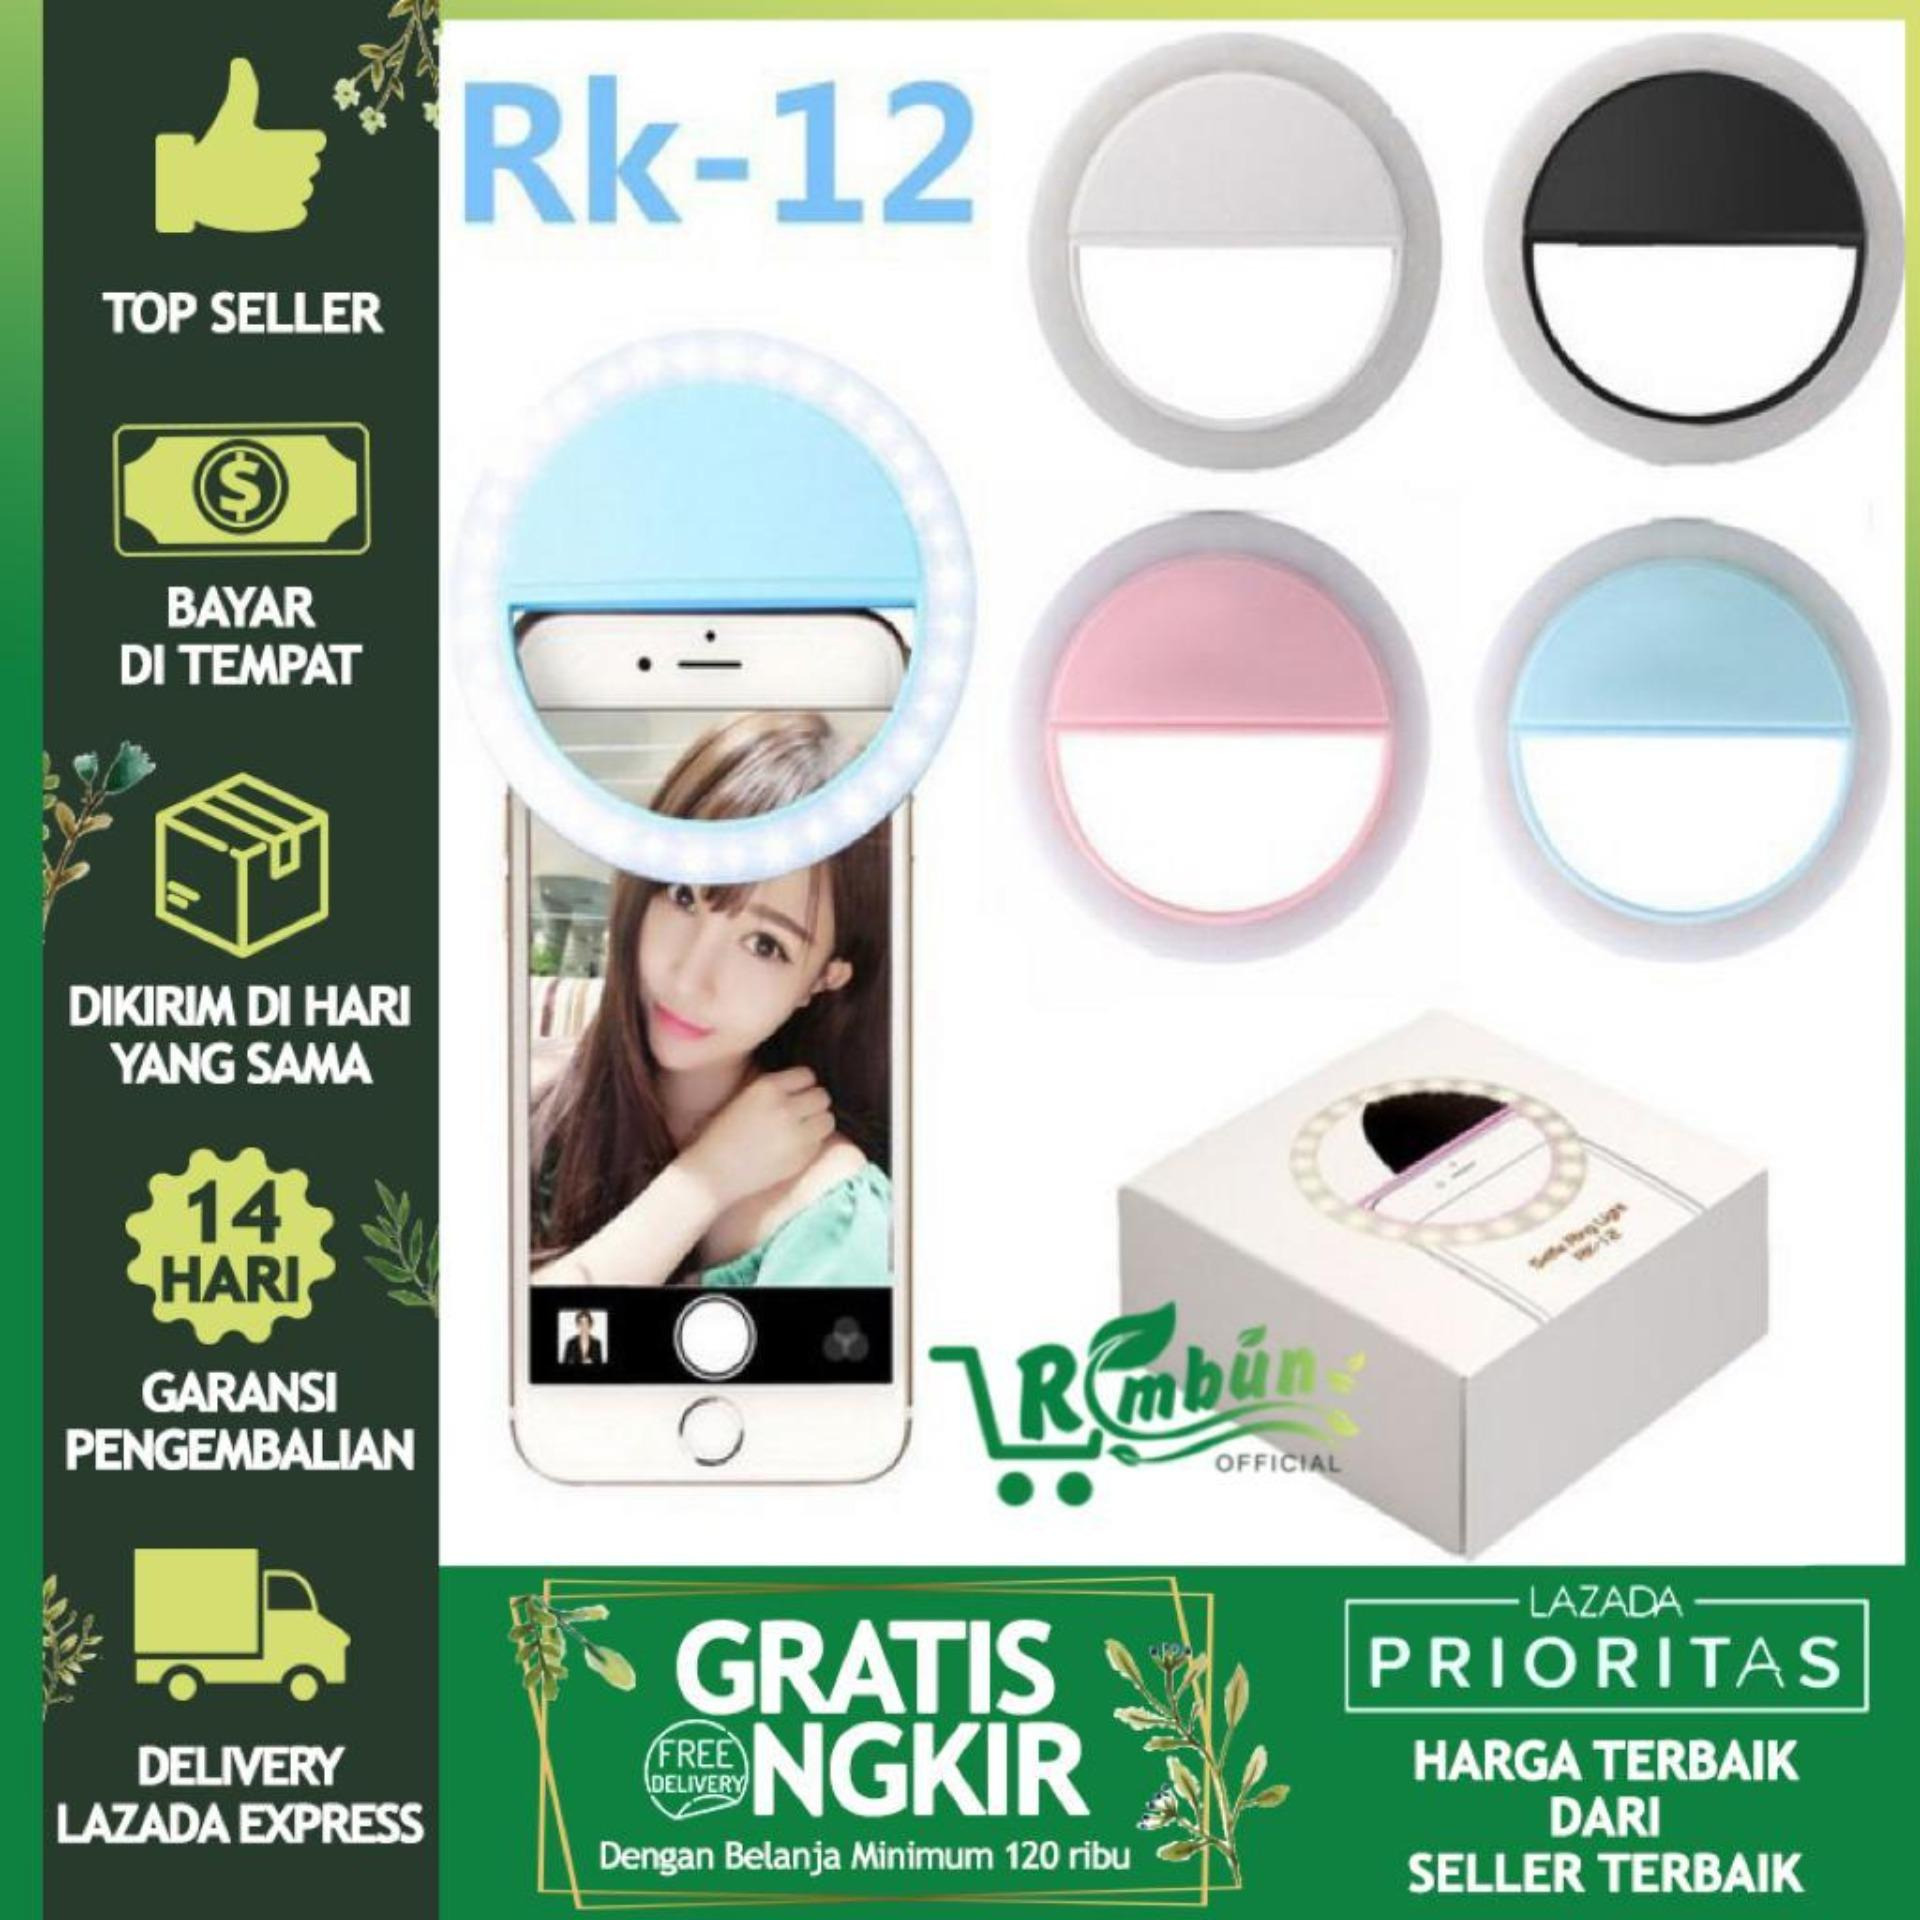 Selfie Ringlight Usb Cable Dan Charger Tipe Rk-12 By Official Rimbun.